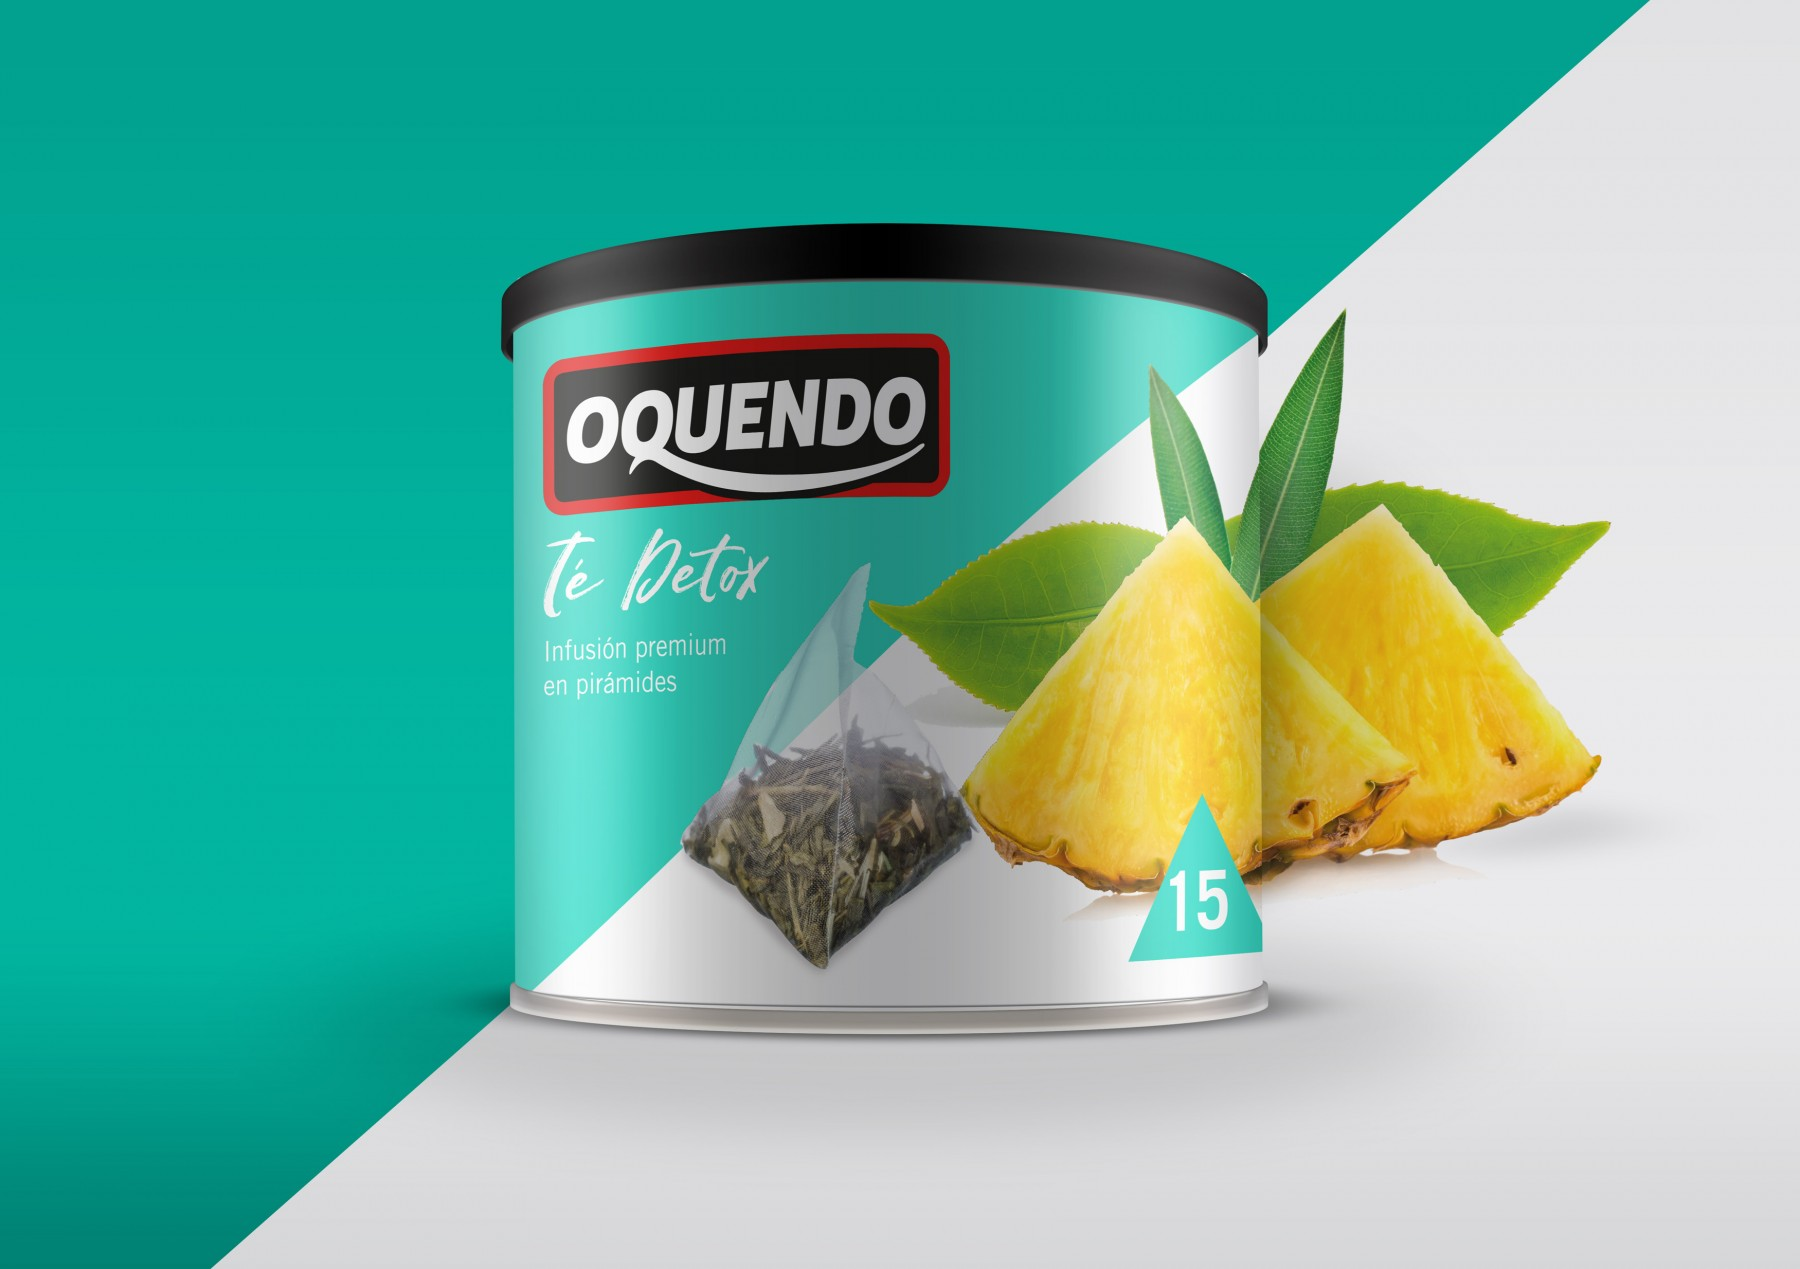 packaging design for Oquendo coffee Premium teas